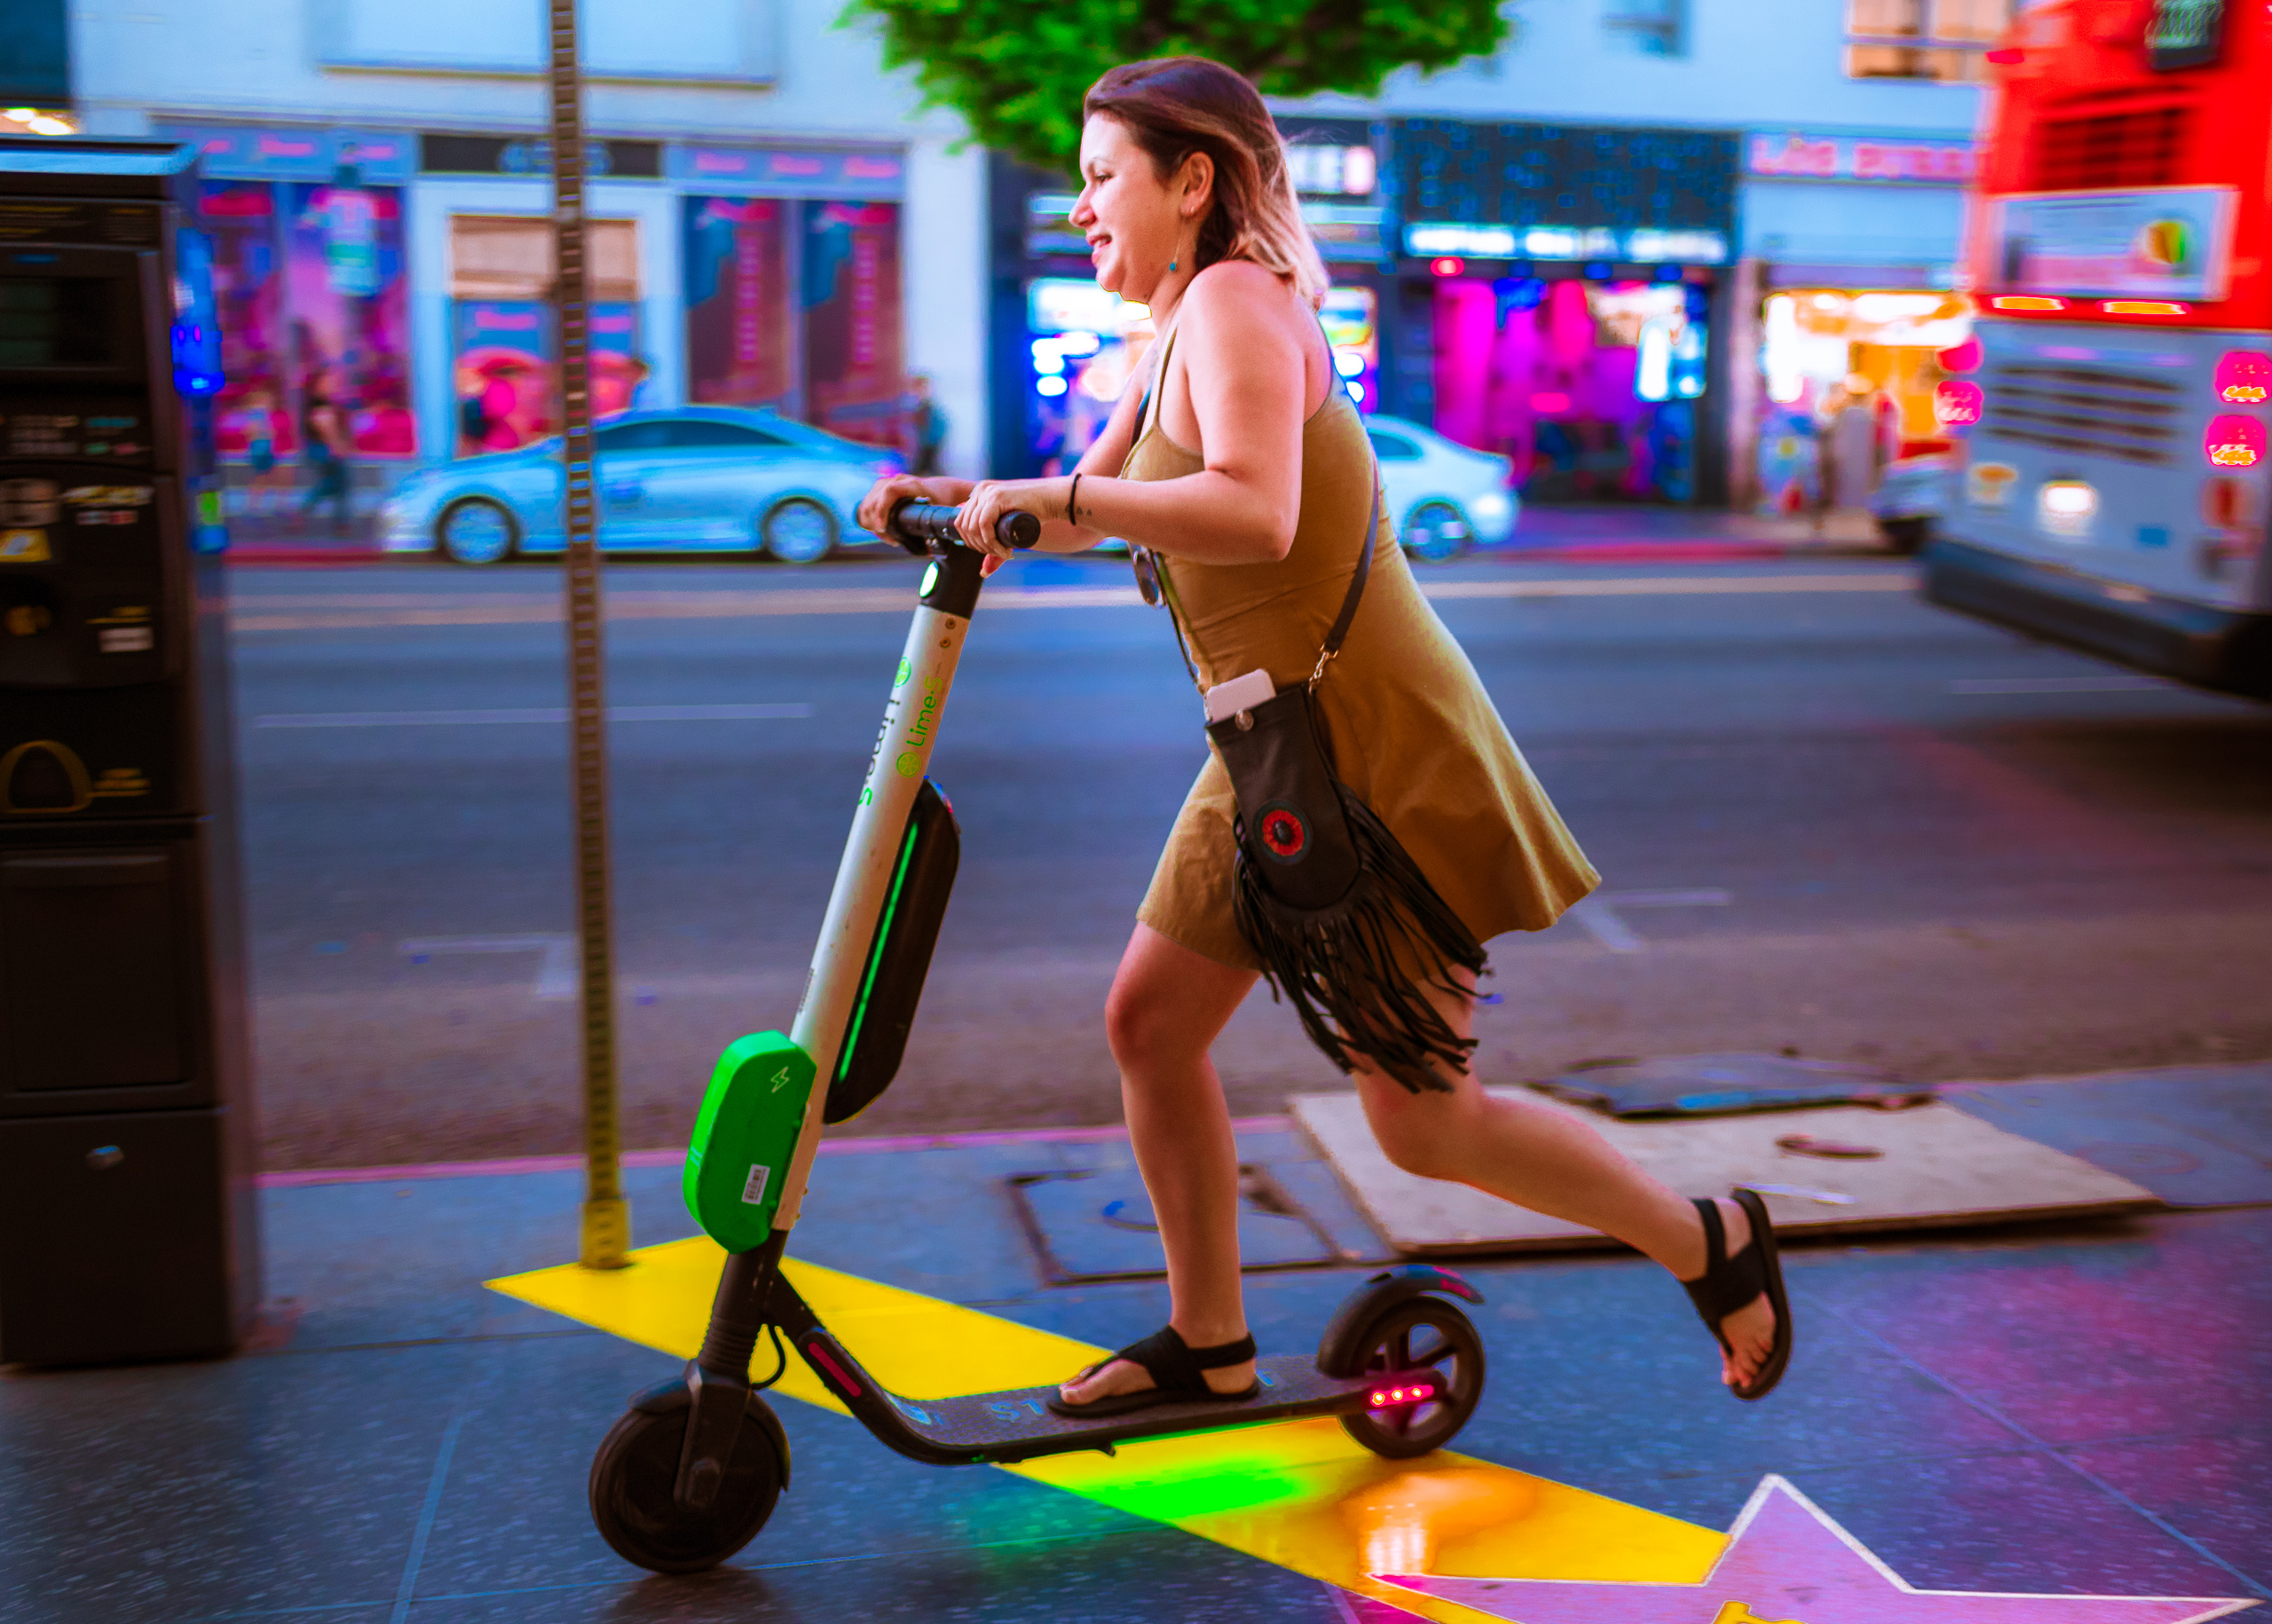 a woman rides a Lime-s electric scooter down Hollywood Blvd. I'm not sure if the charge was low, but for whatever reason, she's giving in a foot kick as if it were a non-powered scooter